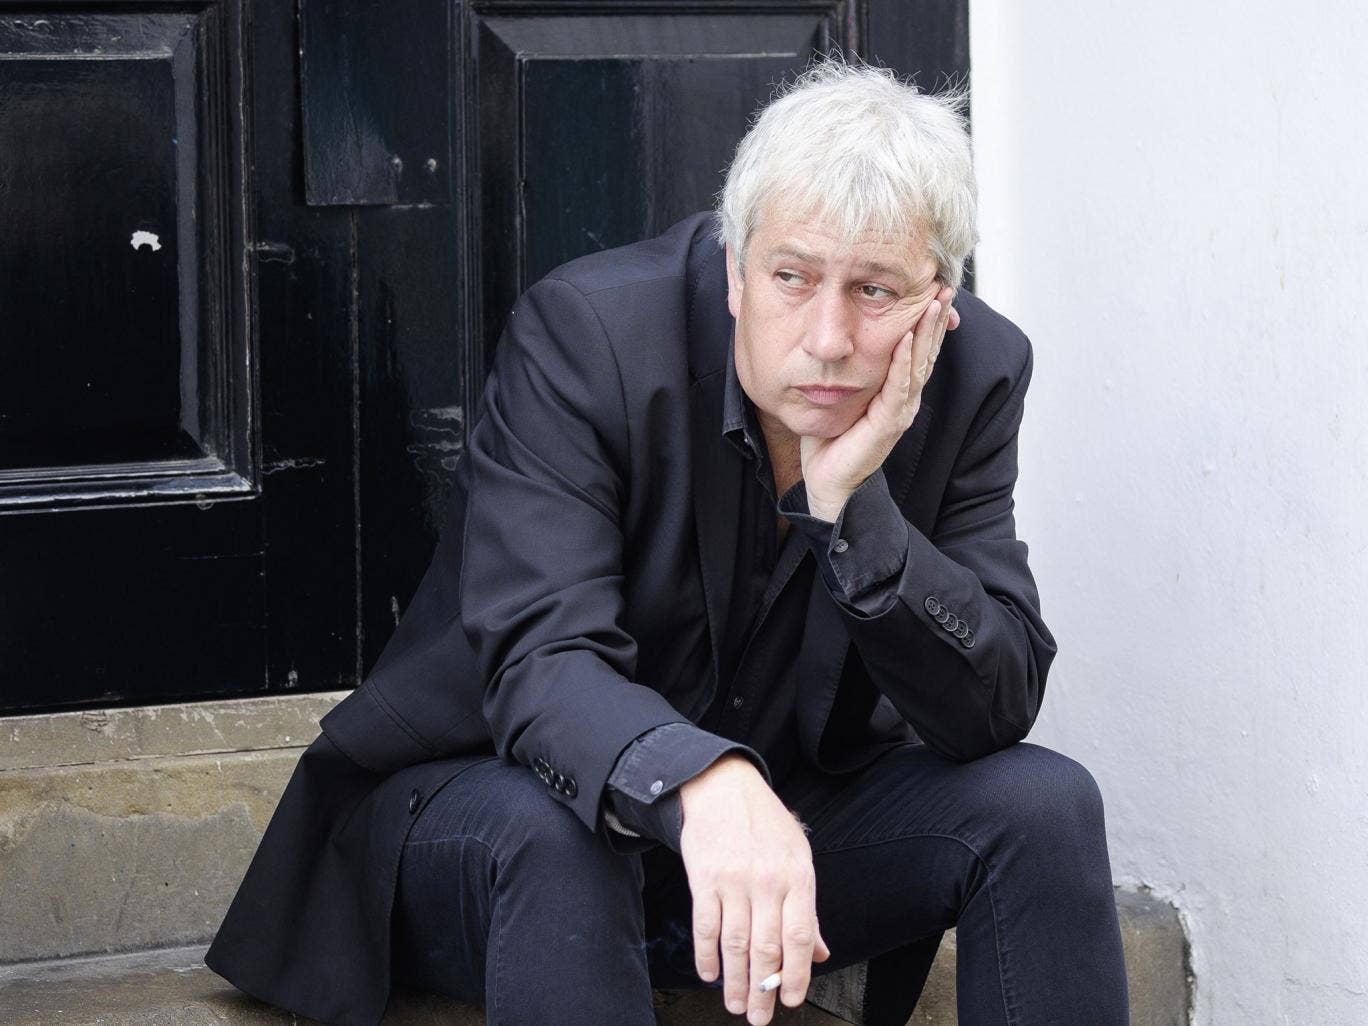 Grumpy old man: Rod Liddle at 54 - if he is miserable, he certainly wrings a lot of satifaction from talking about it